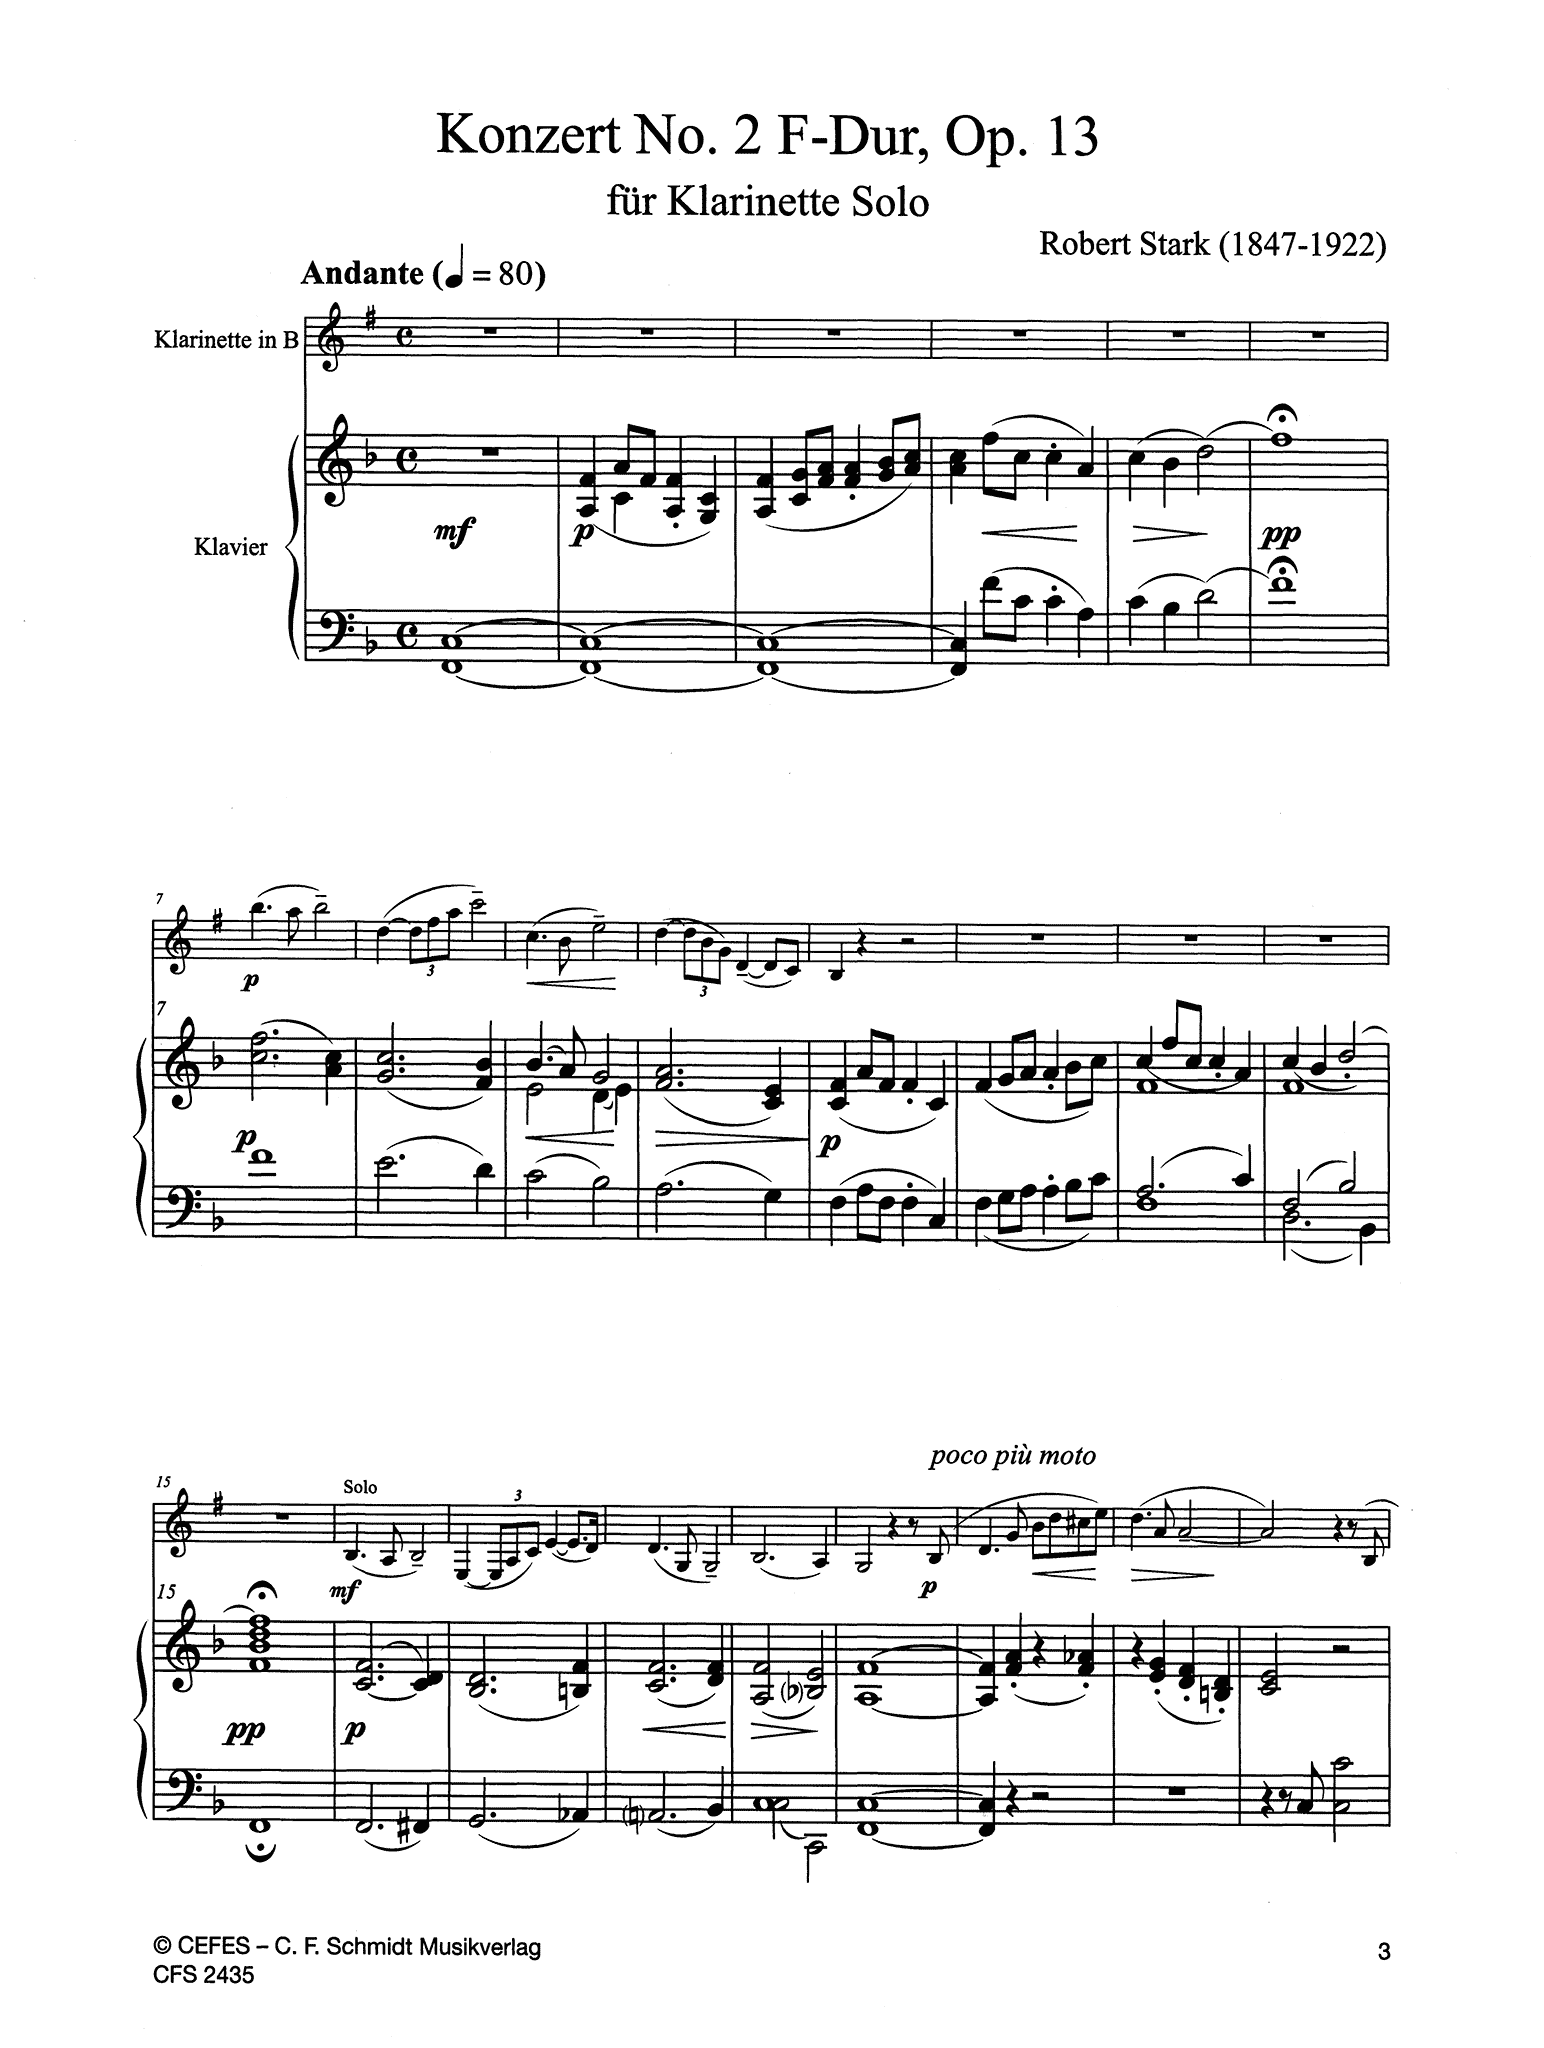 Clarinet Concerto No. 2 in F Major, Op. 13 Score